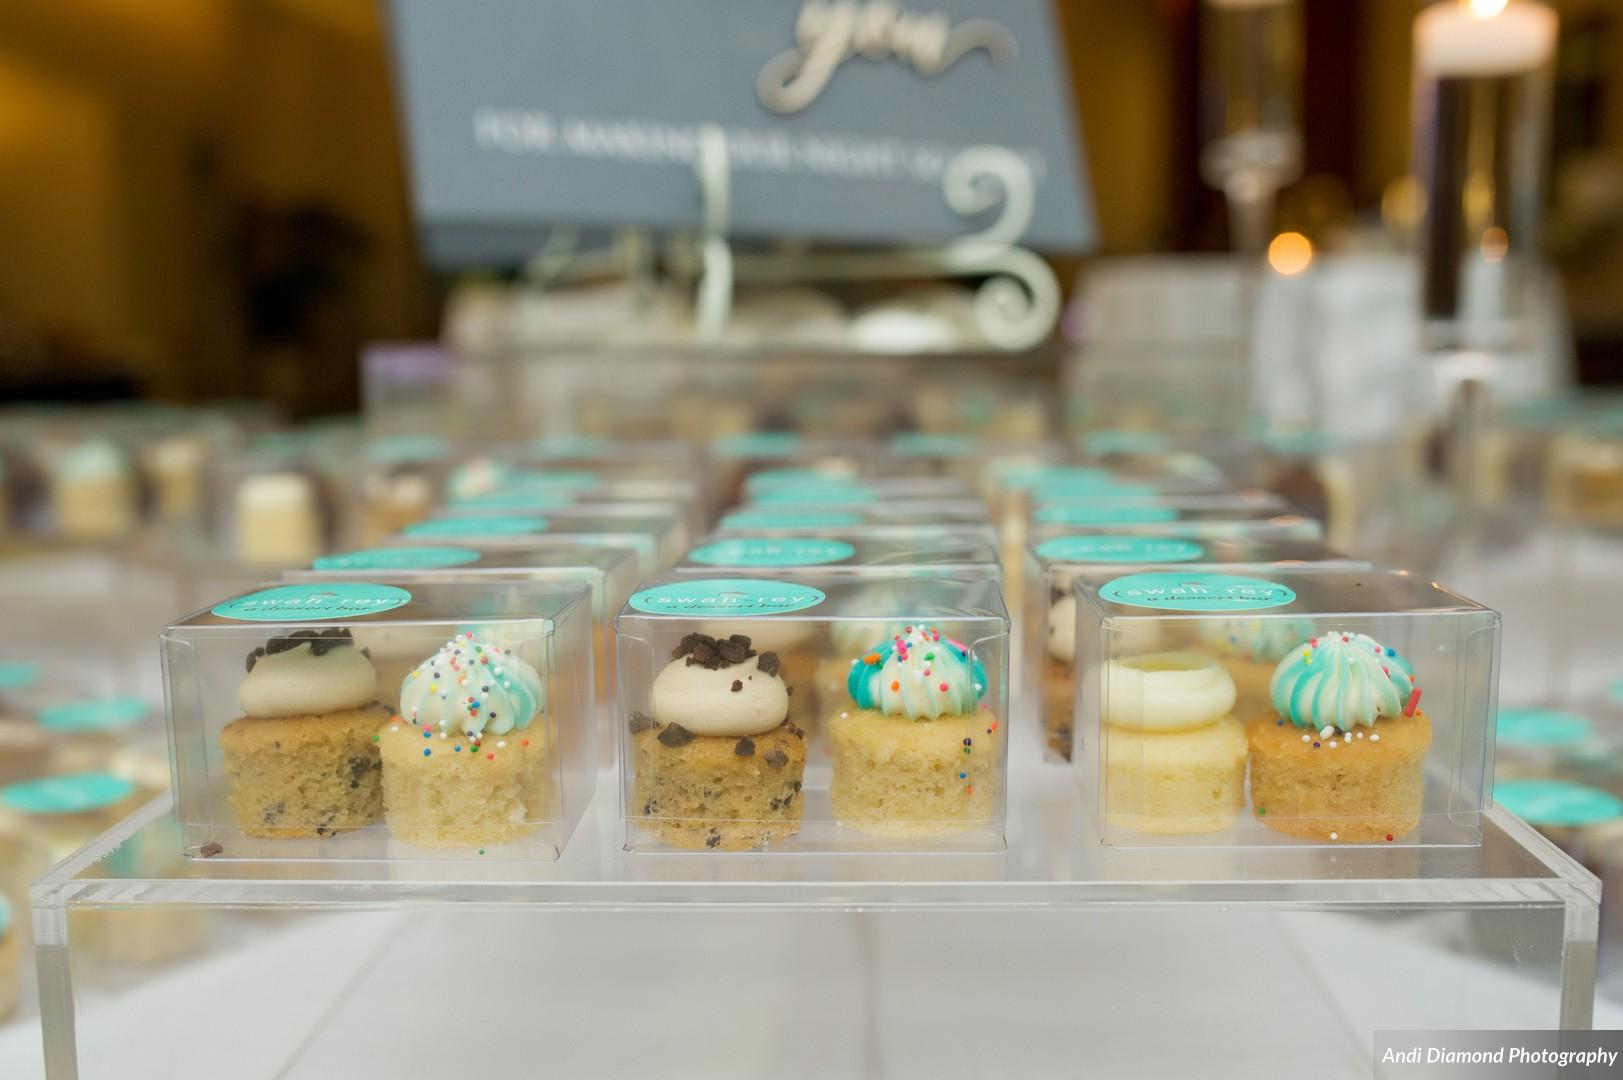 Guests enjoyed a late night snack of chicken tenders or grilled brie and strawberry sandwiches, with mini cupcake favors to take away as they departed. Talk about a wedding fit for a foodie!